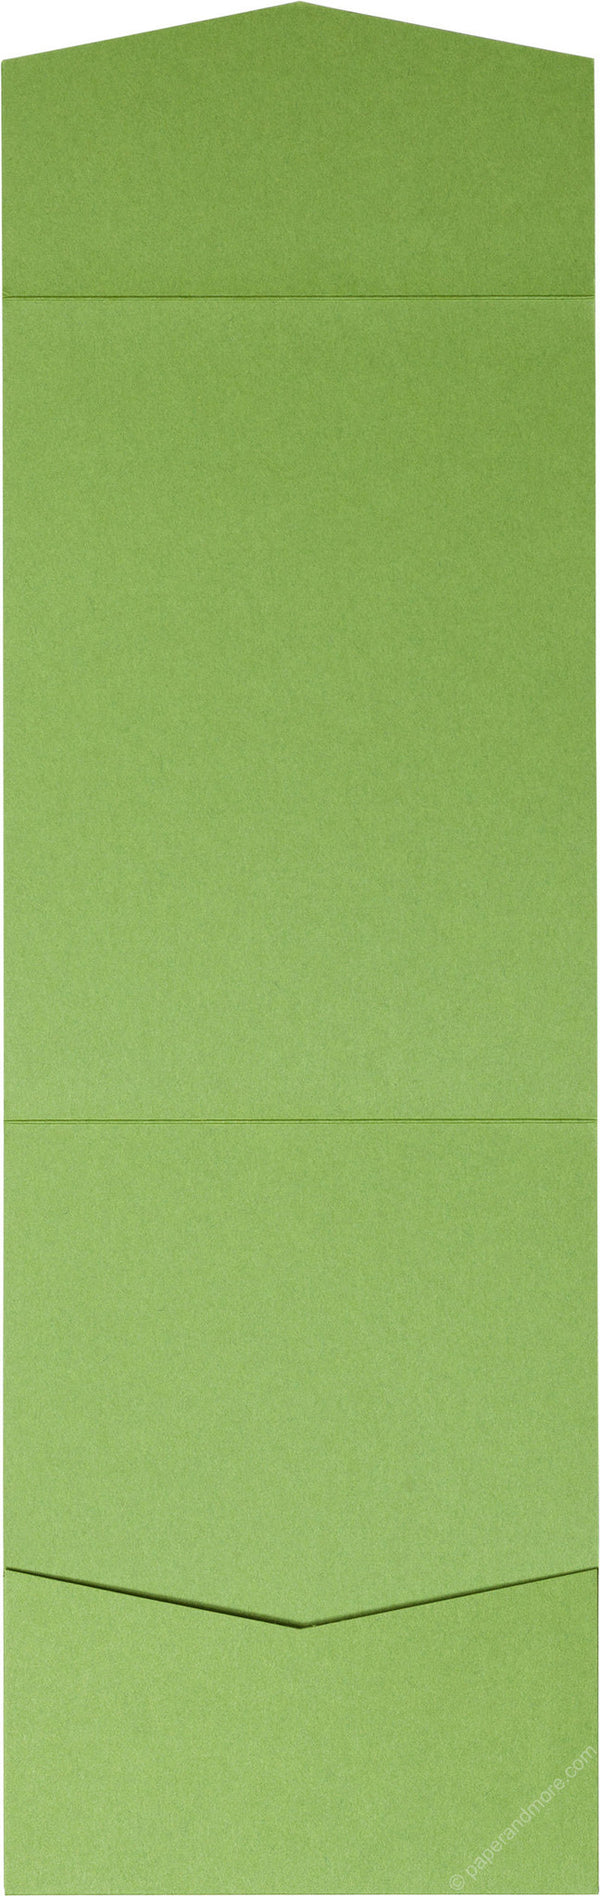 Meadow Green Solid Pocket Invitation Card, A7 Cascade - Paperandmore.com